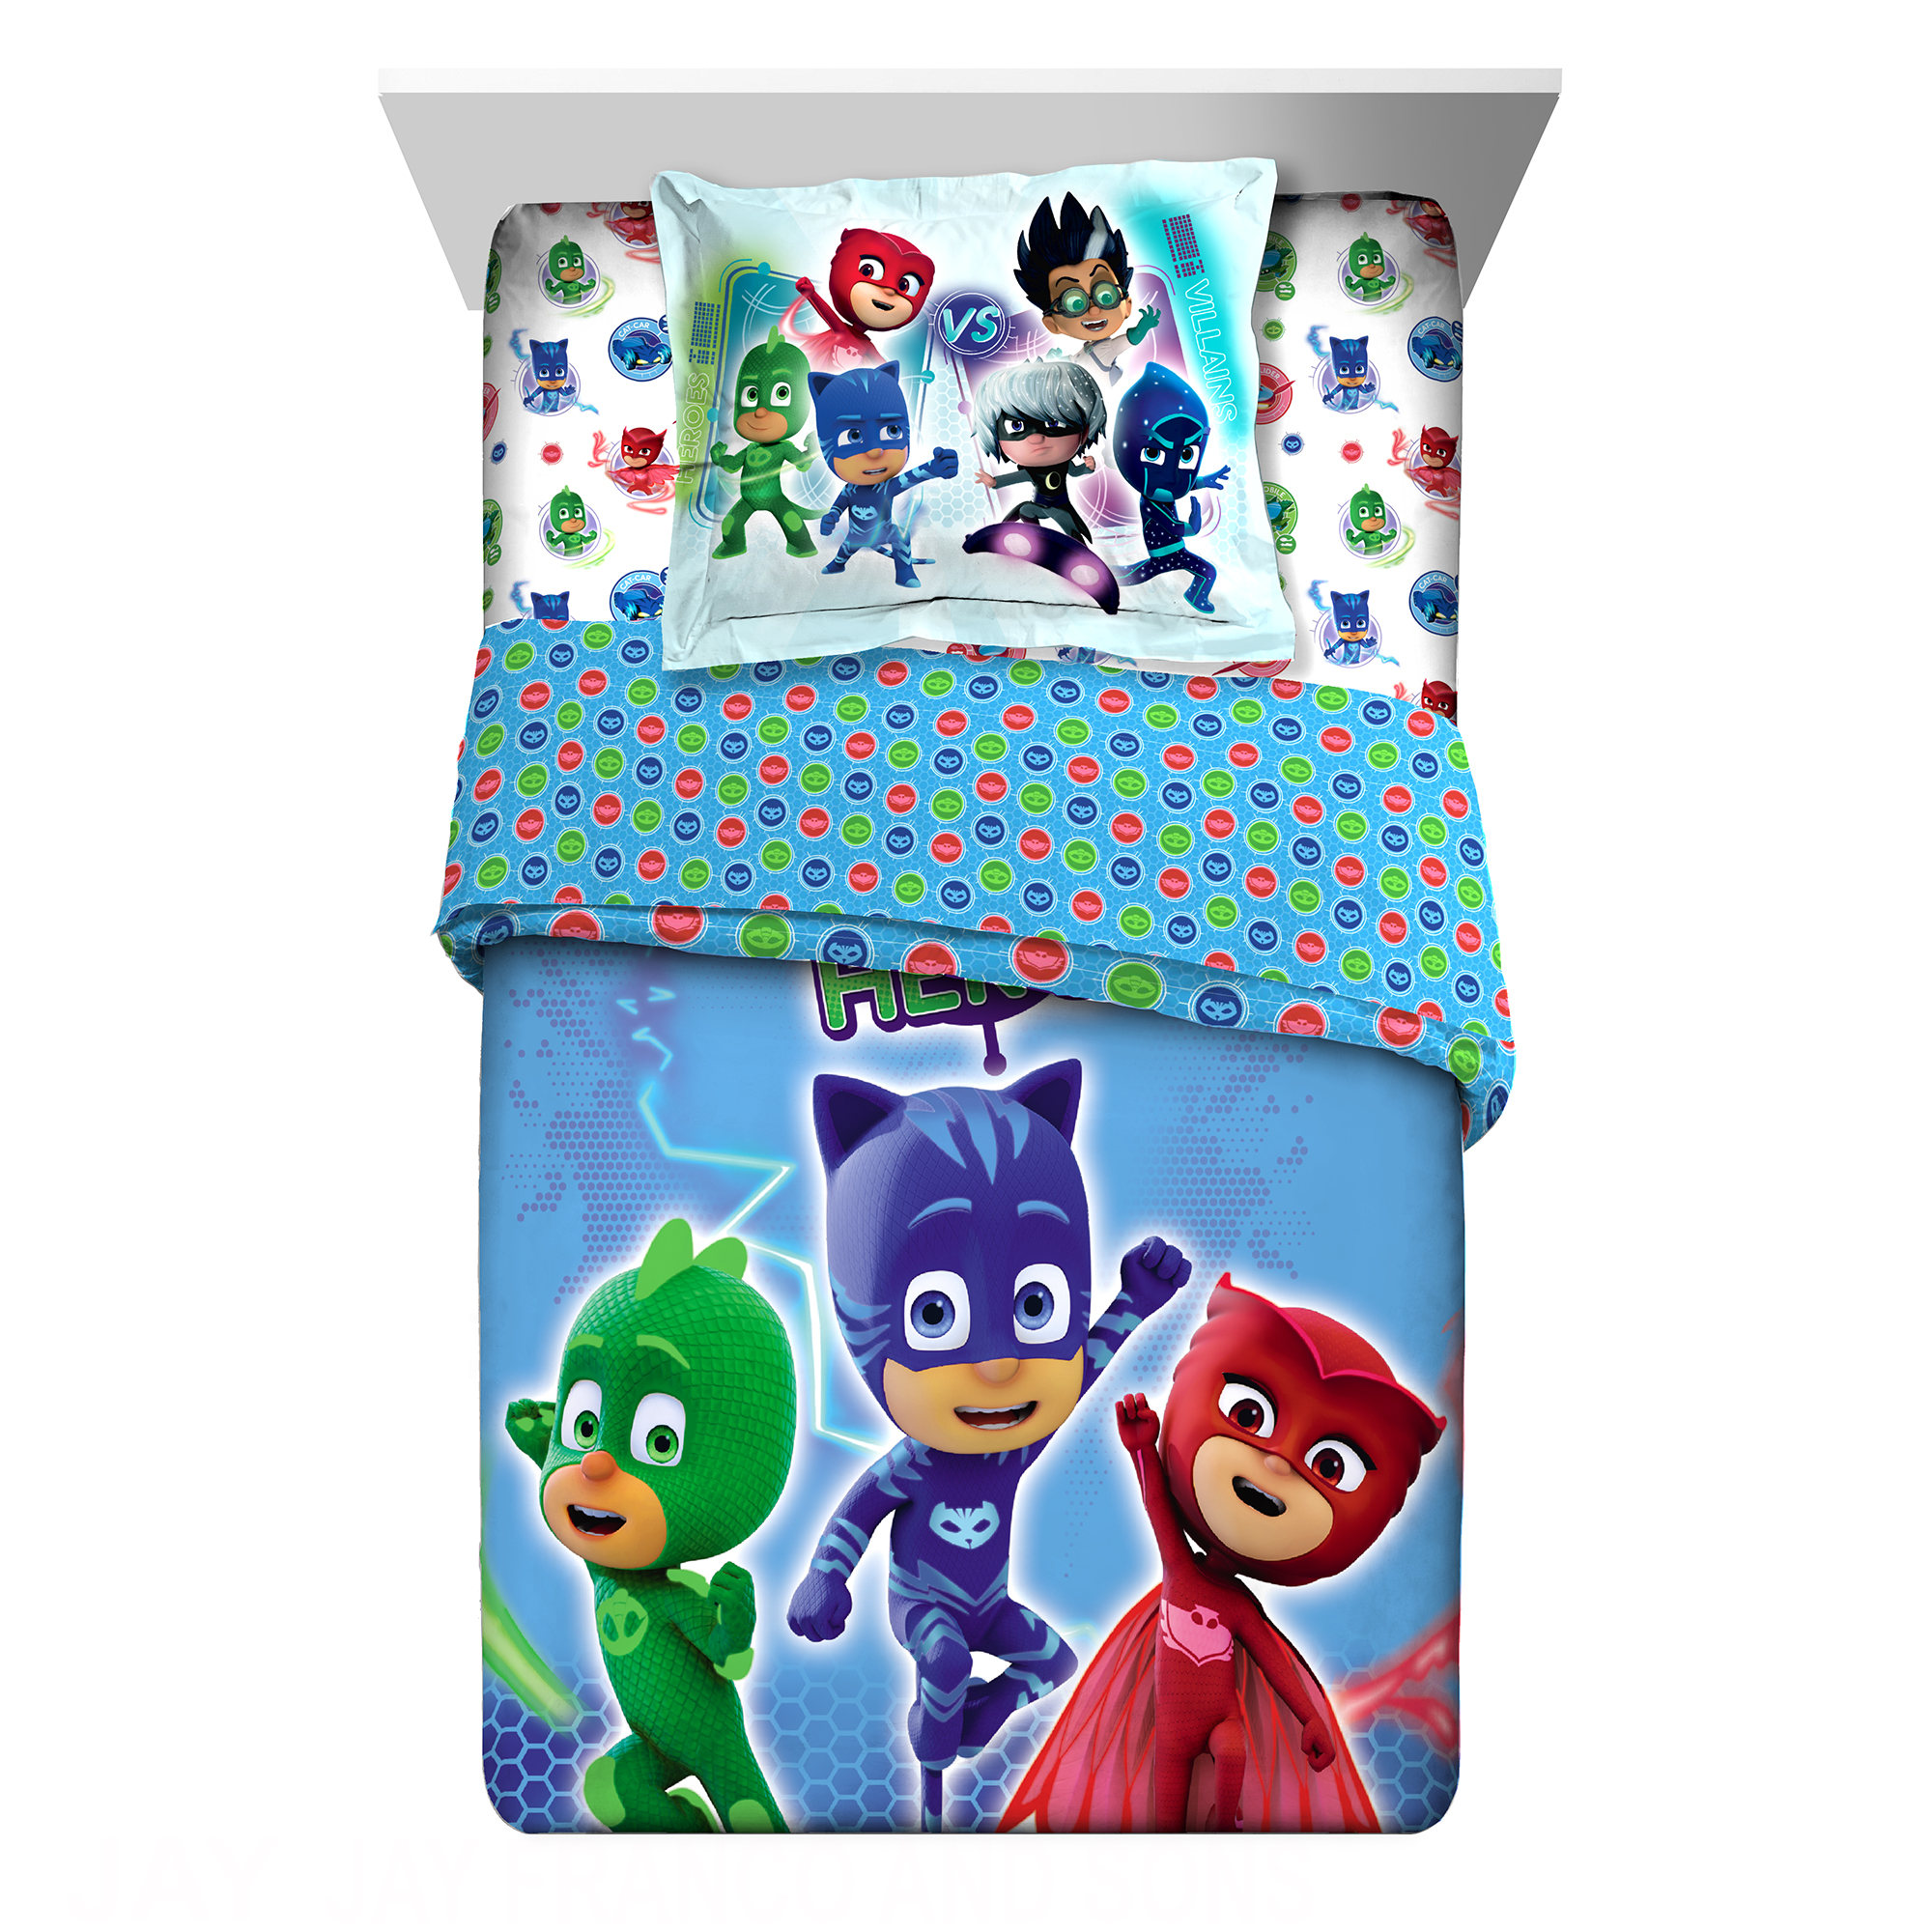 PJ Masks On Our Way Twin Full Comforter with Sham, 2 Piece